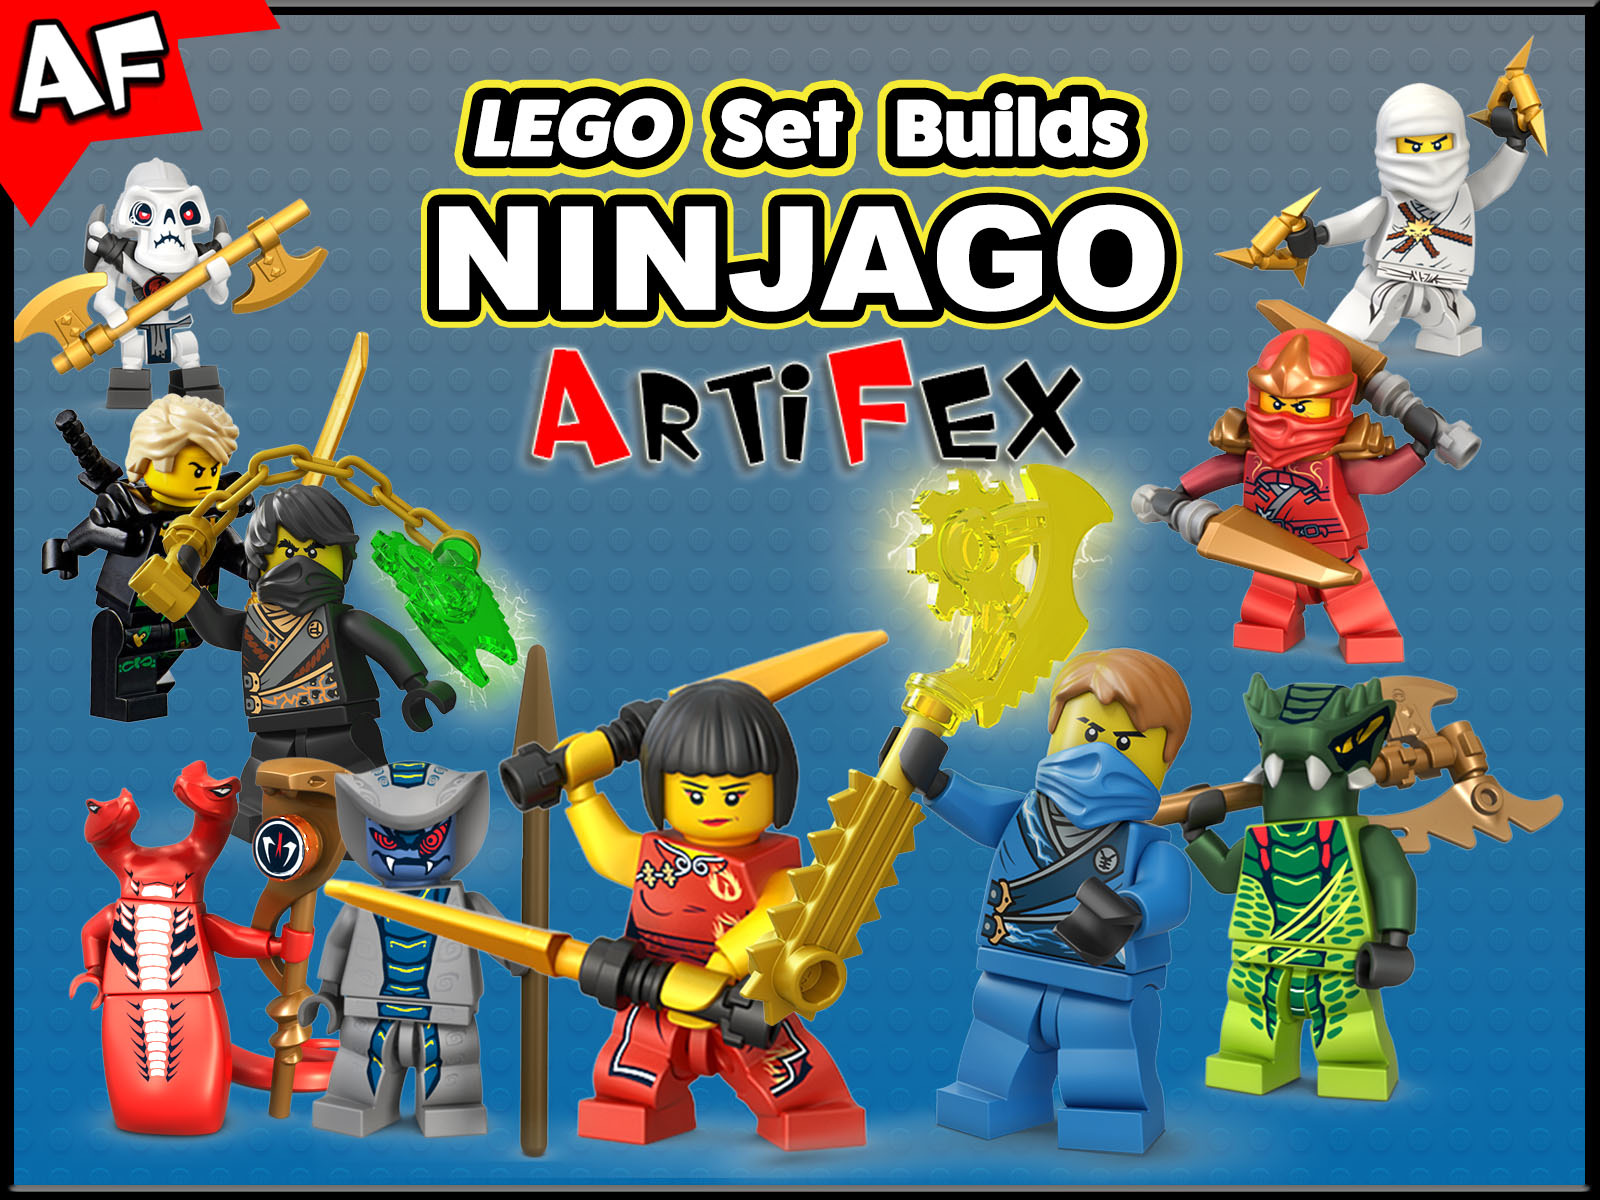 Prime Video: Clip: Lego Set Builds Ninjago - Artifex